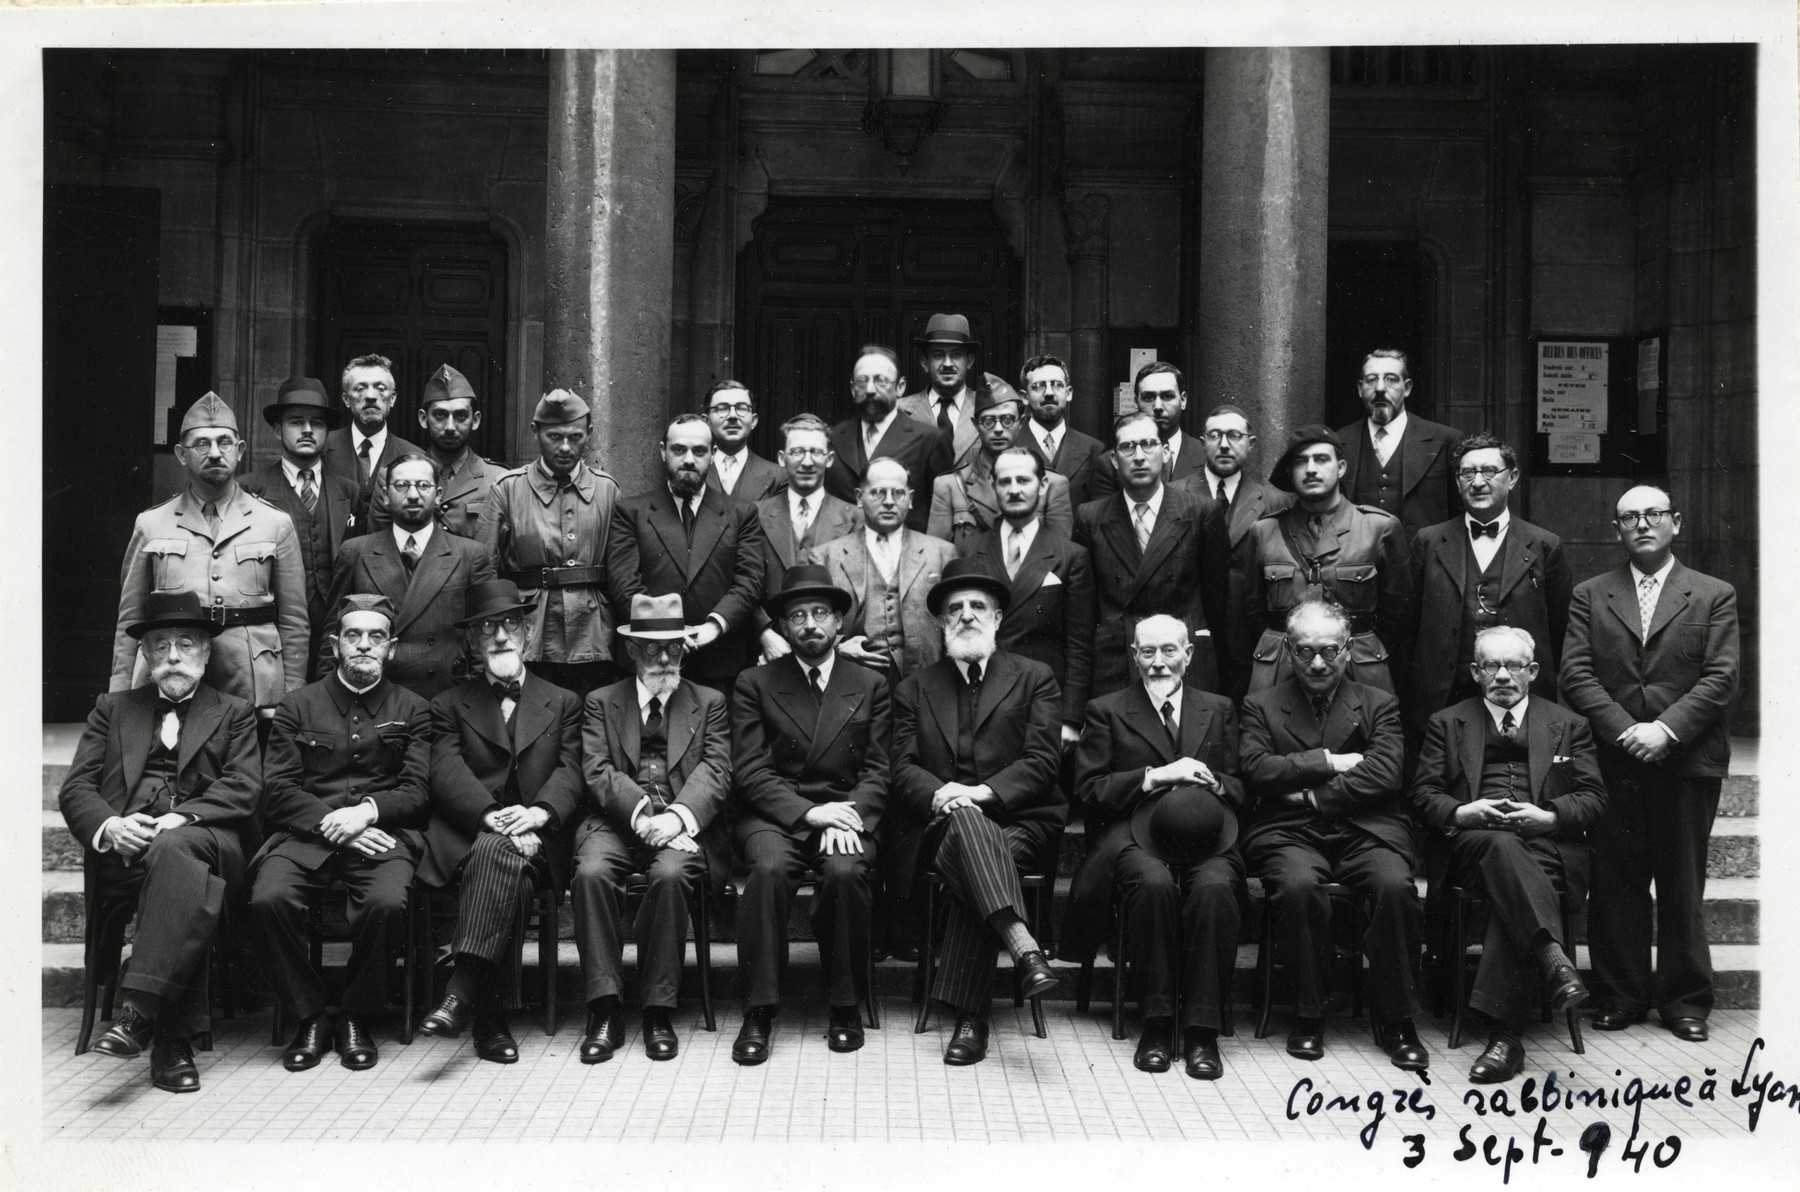 Group portrait of participants in a rabbinical assembly in Lyon.  Among those pictured is Rabbi Jacob Kaplan (first row fifth from the left), Chief Rabbi of France, Isaï Swartz (first row, sixth from the left), Rabbi Moise Cassorla (second row, second from the left), and Rabbi David Feuerwerker (second row, fourth from the left).